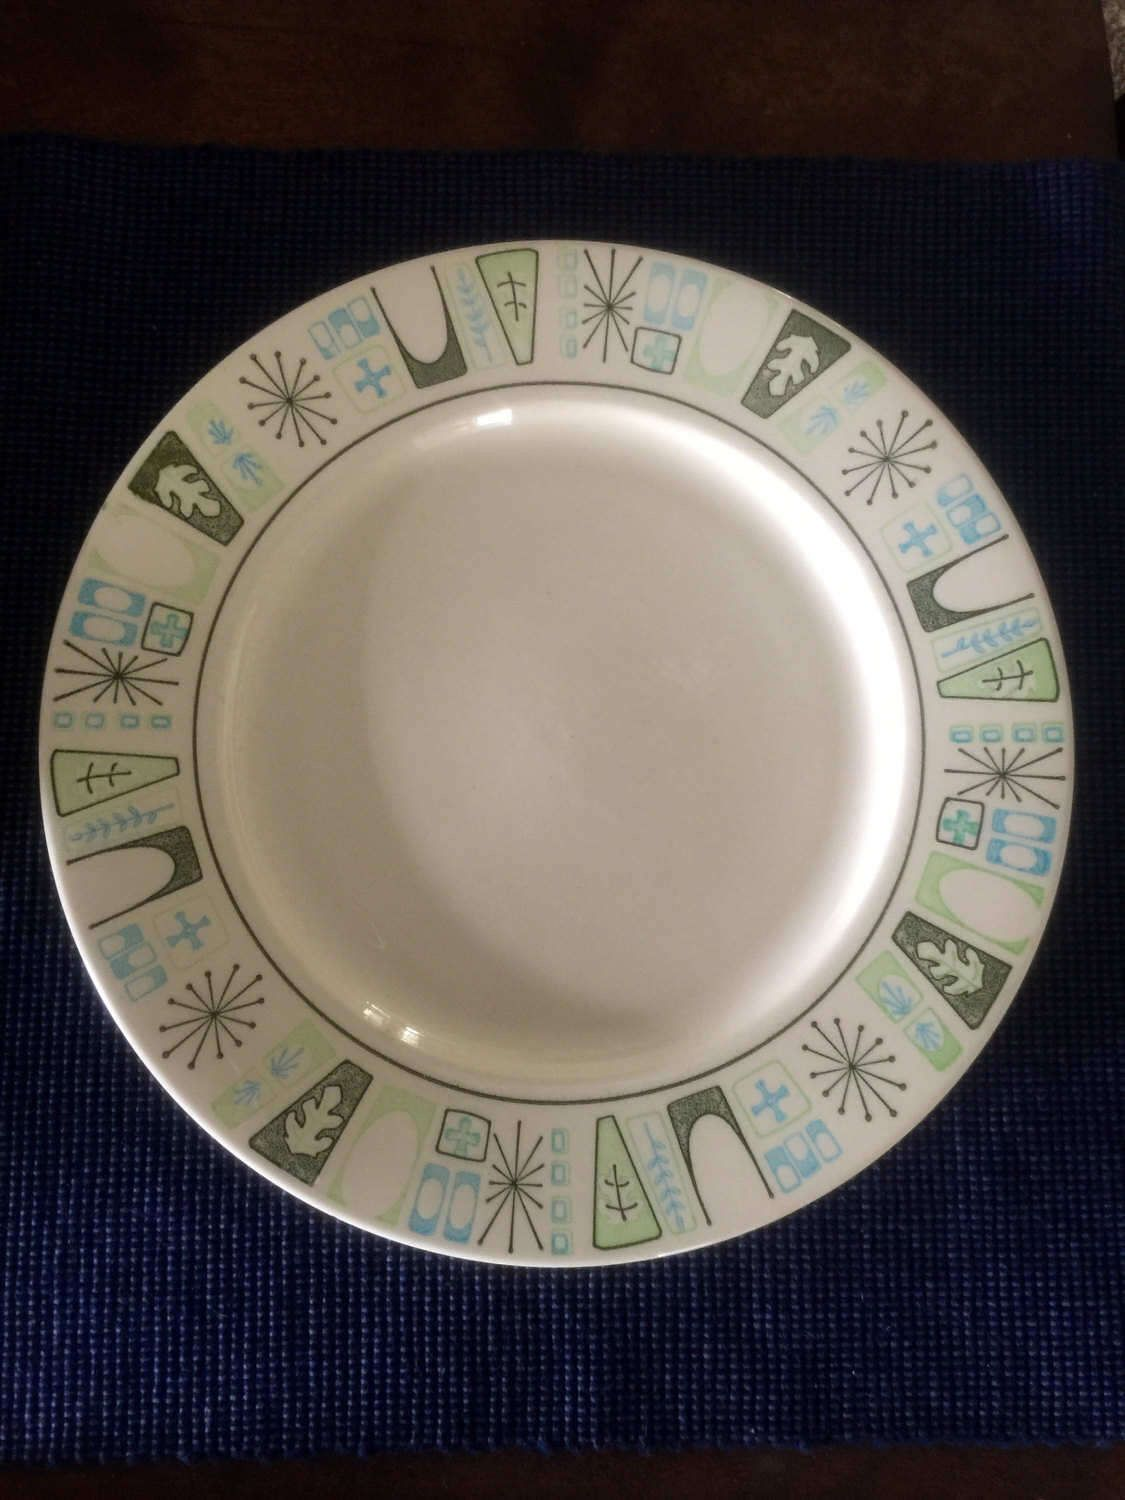 A personal favorite from my Etsy shop //.etsy.com · Dinner PlatesTrayEtsy ... & A personal favorite from my Etsy shop https://www.etsy.com/listing ...